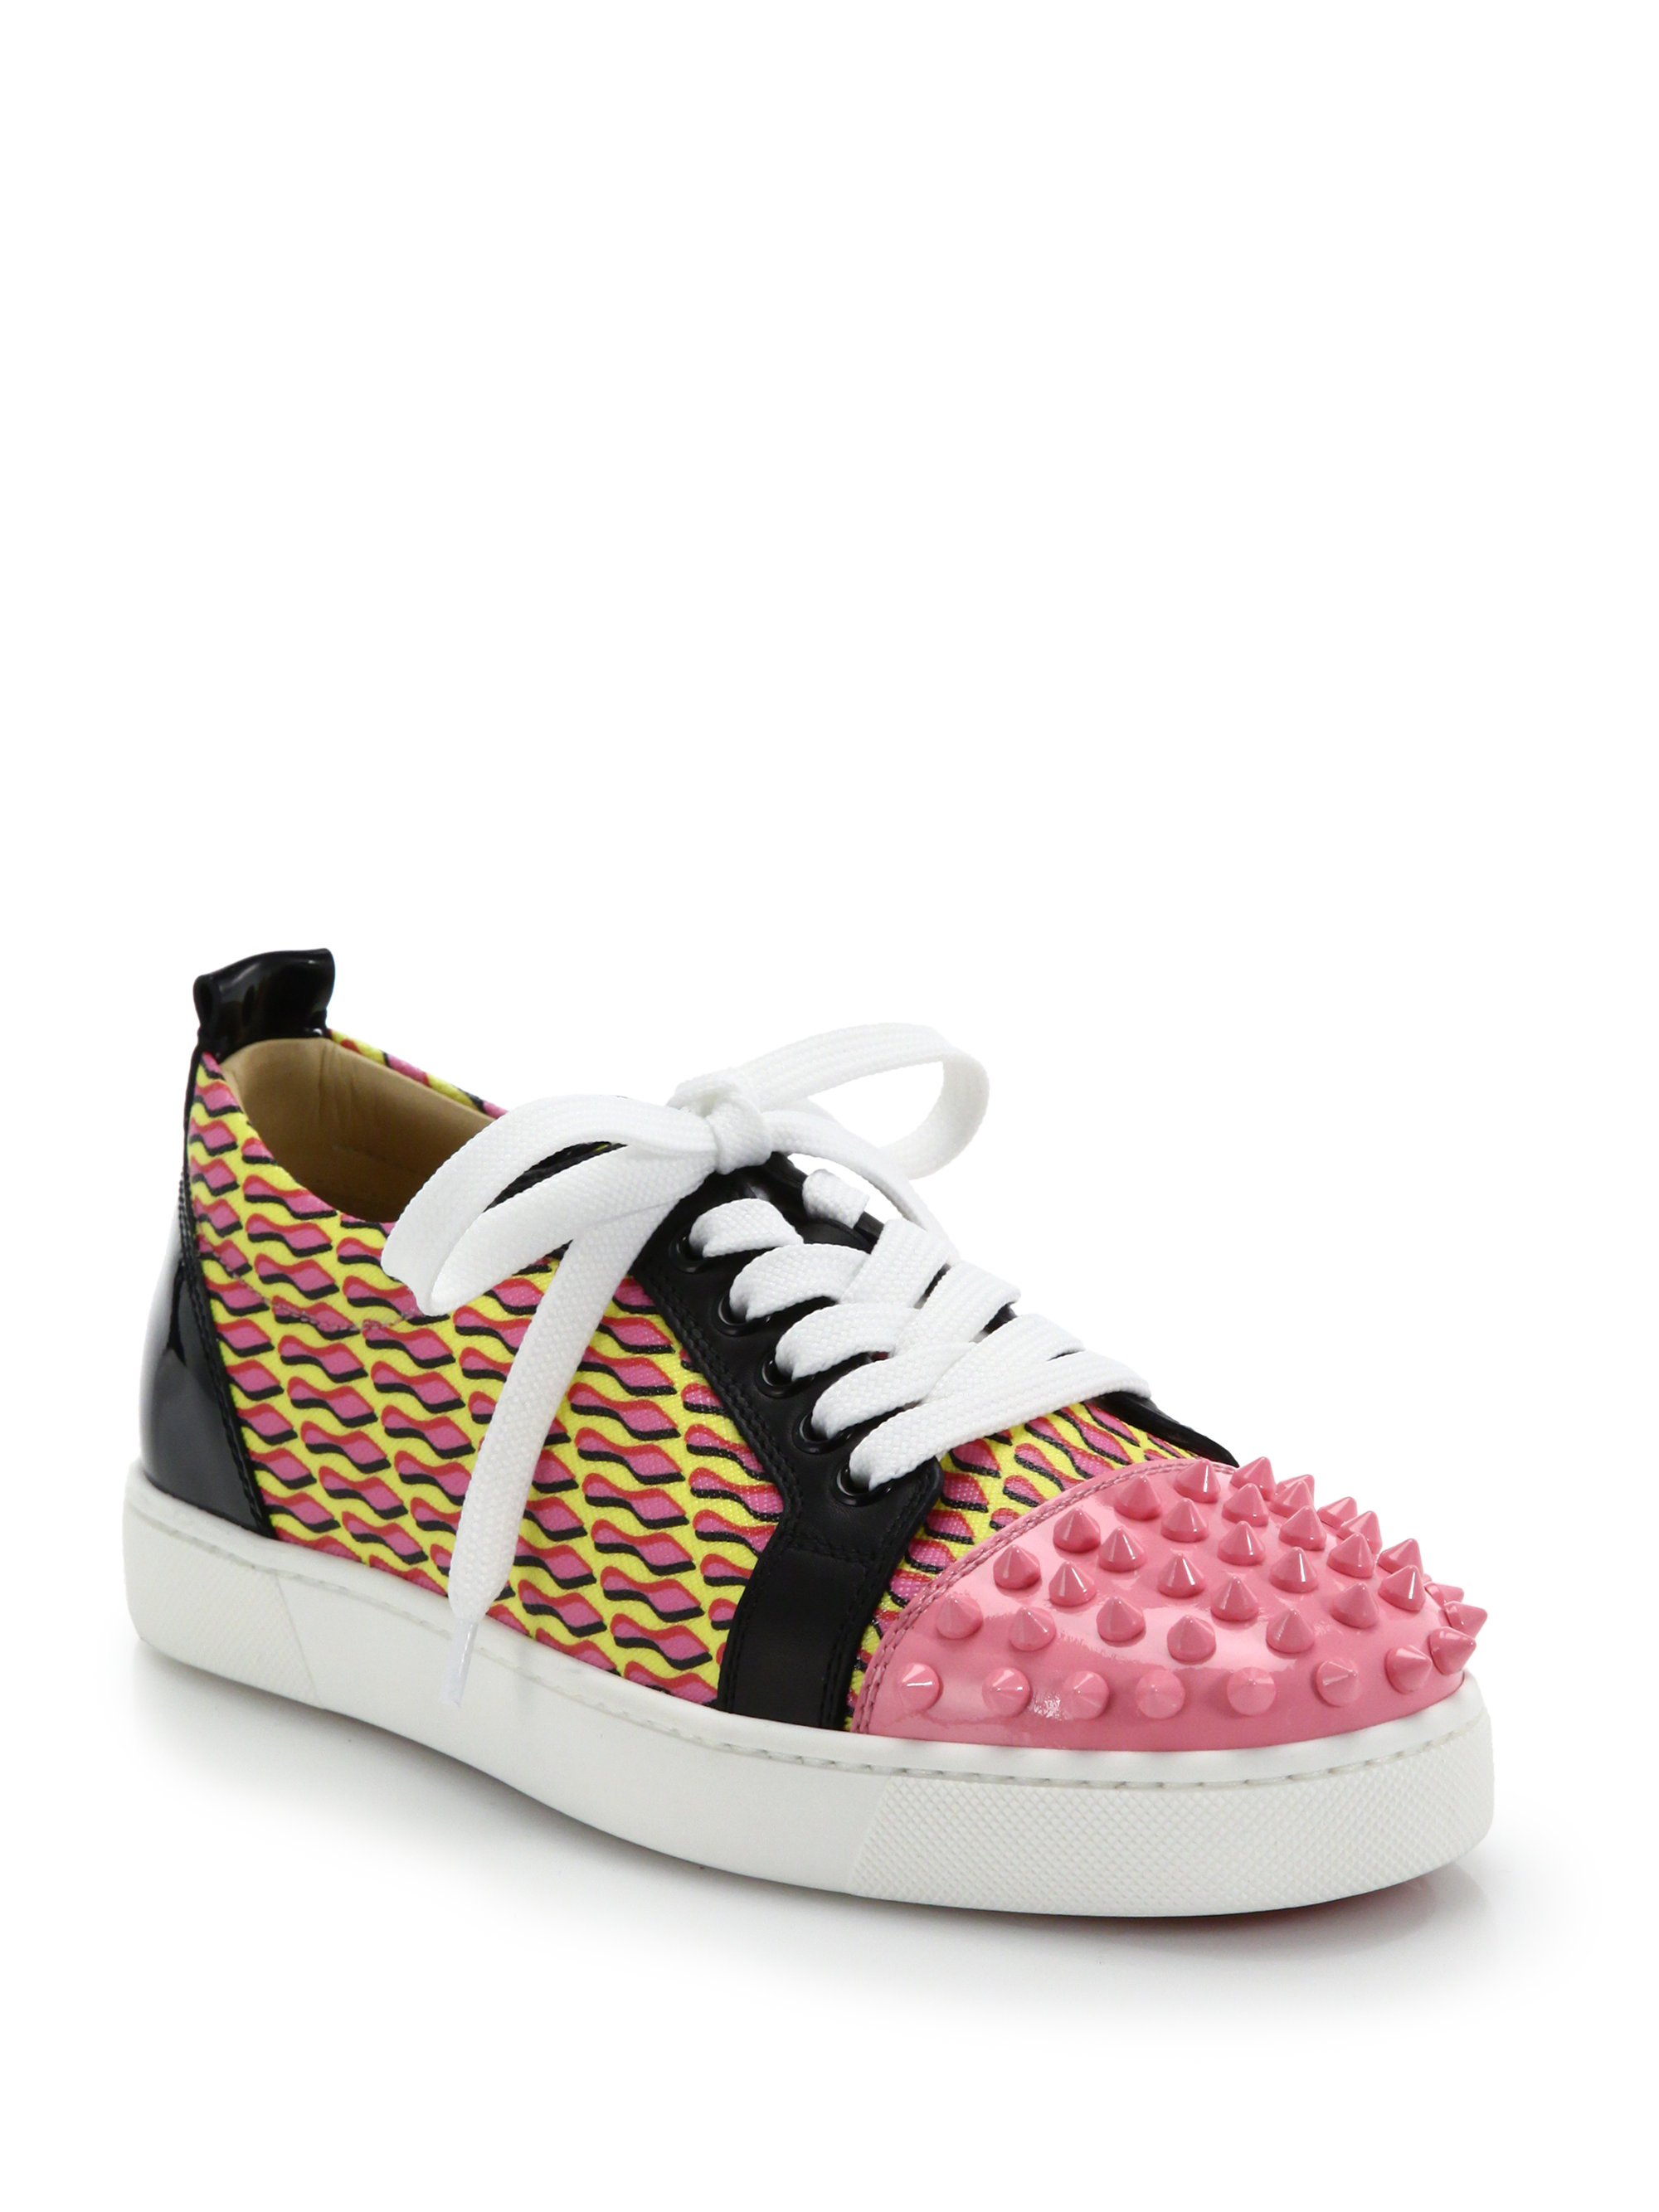 4ece3560b85 Christian Louboutin Pink Louis Jr Studded Leather & Printed Canvas Sneakers